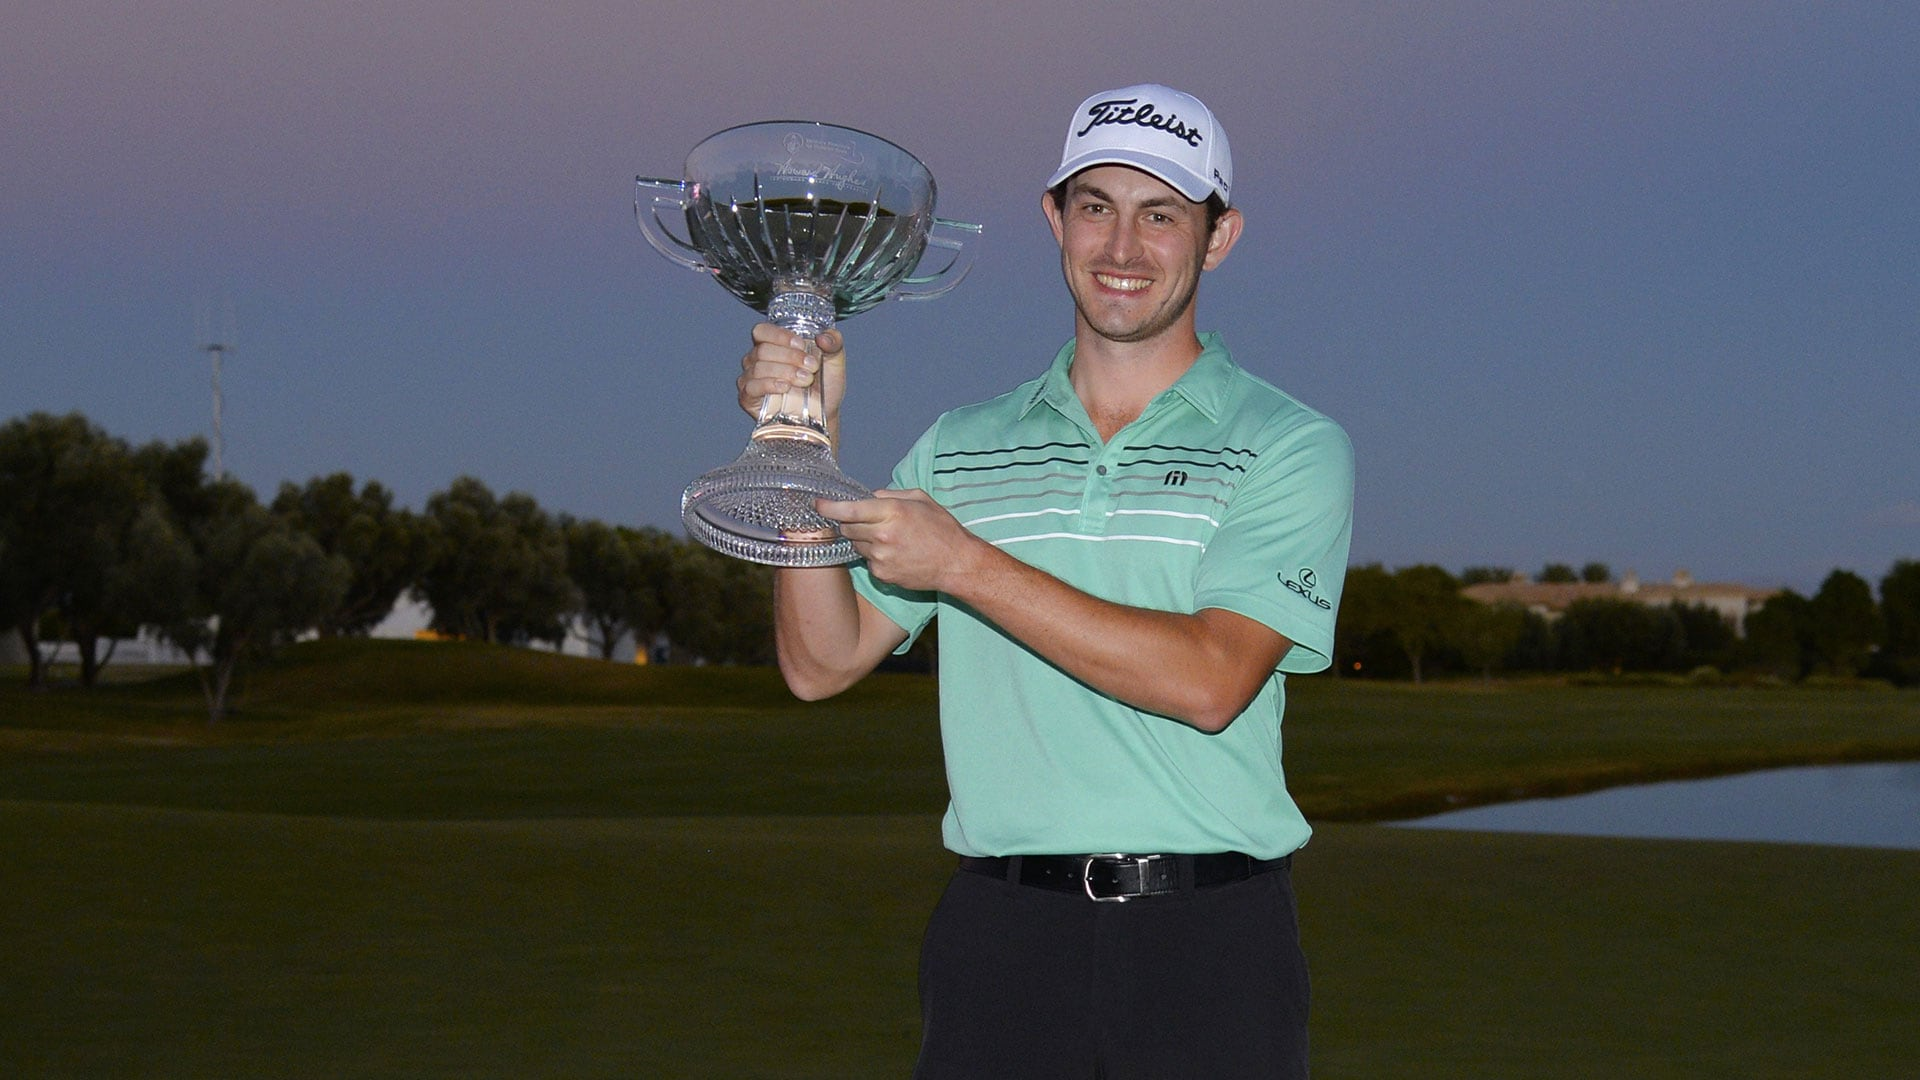 Patrick Cantlay during the final round of the Shriners Hospitals for Children Open.